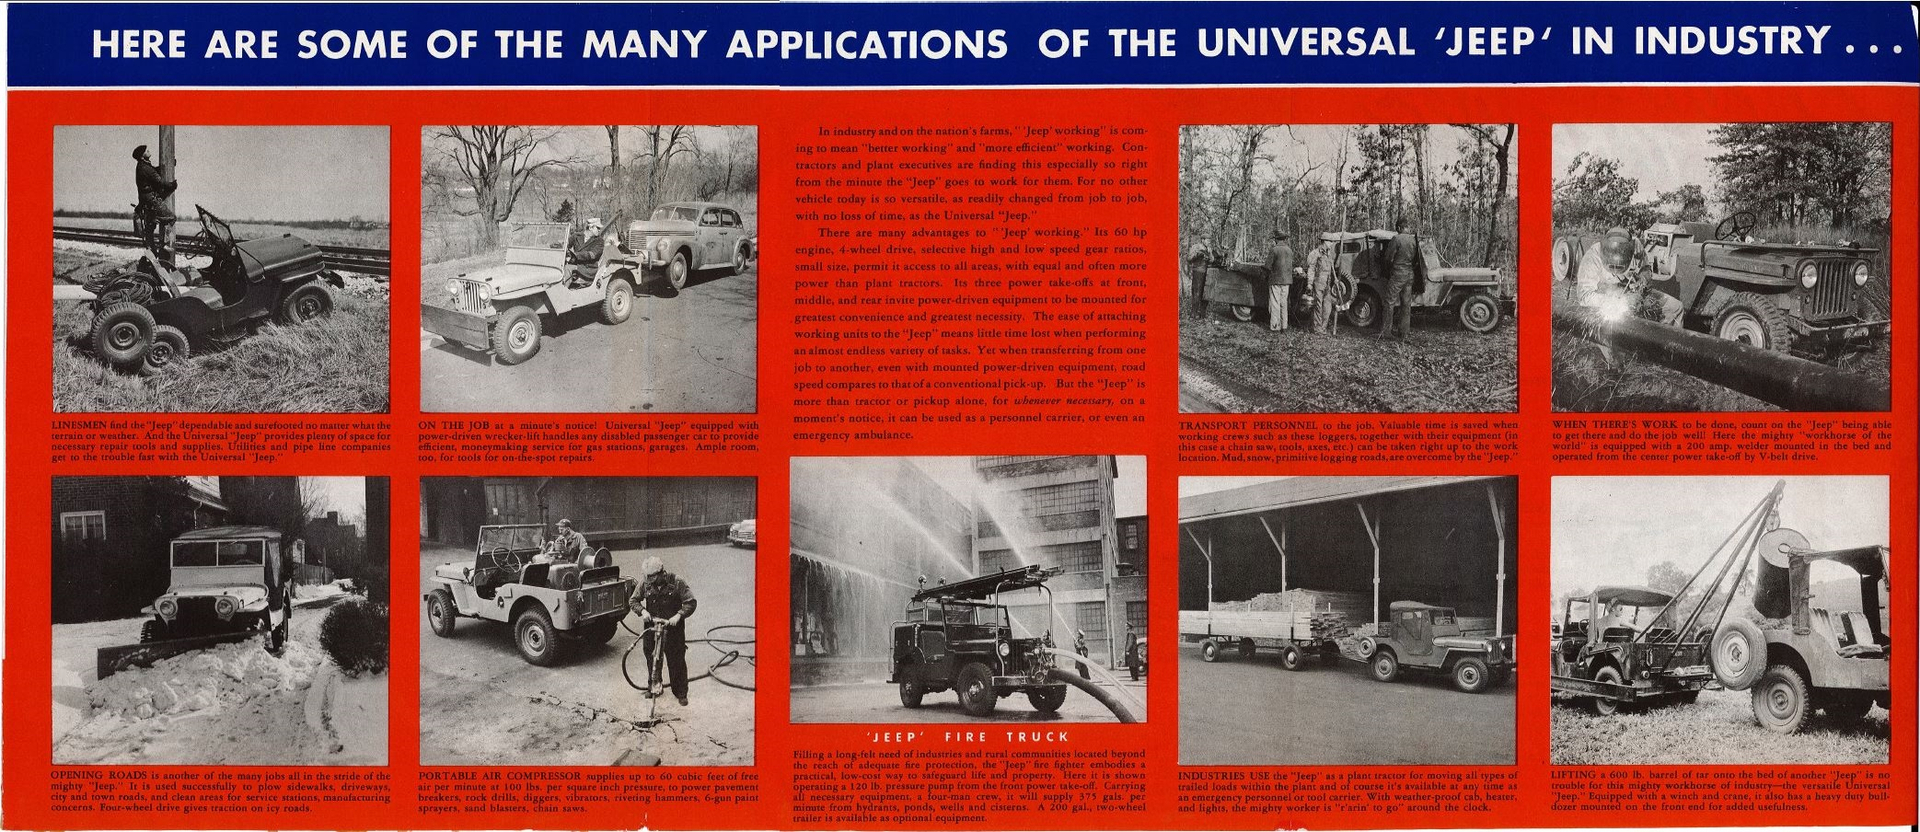 The Universal Jeep in Industry